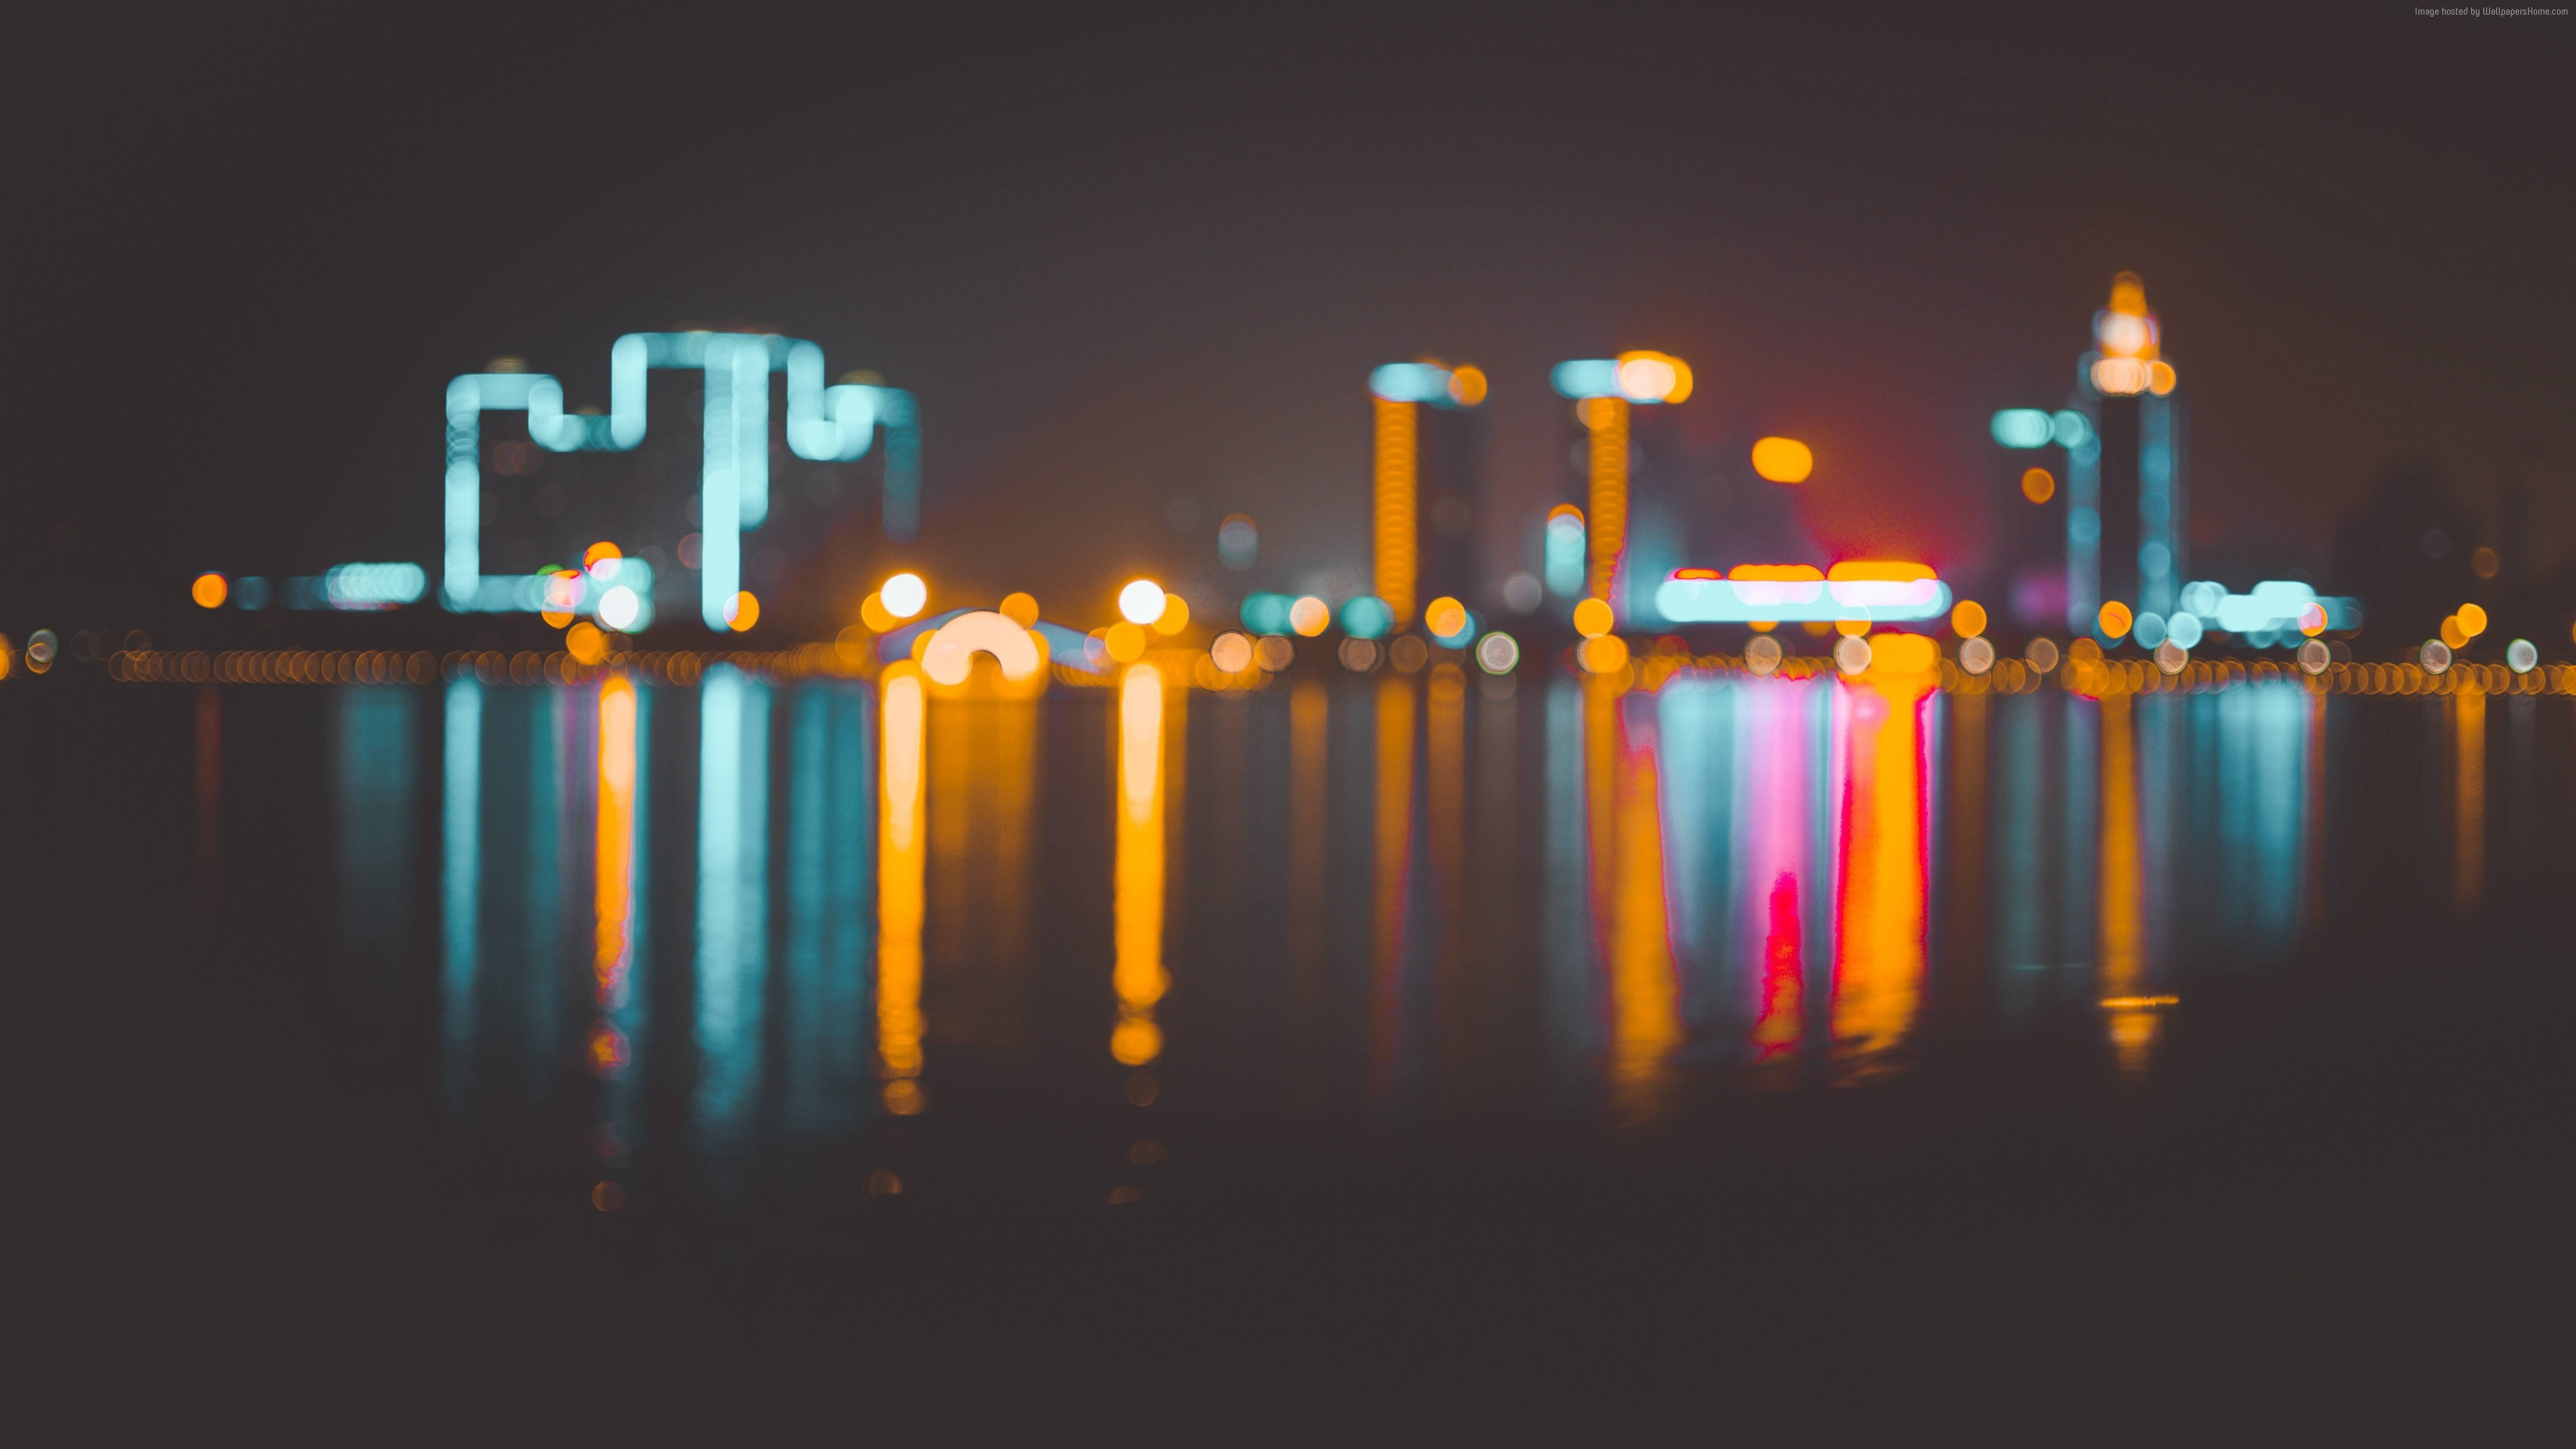 Wallpaper Blur, Bokeh, City, Night, 4k, 6k, Architecture - City Photo Lights Blur , HD Wallpaper & Backgrounds